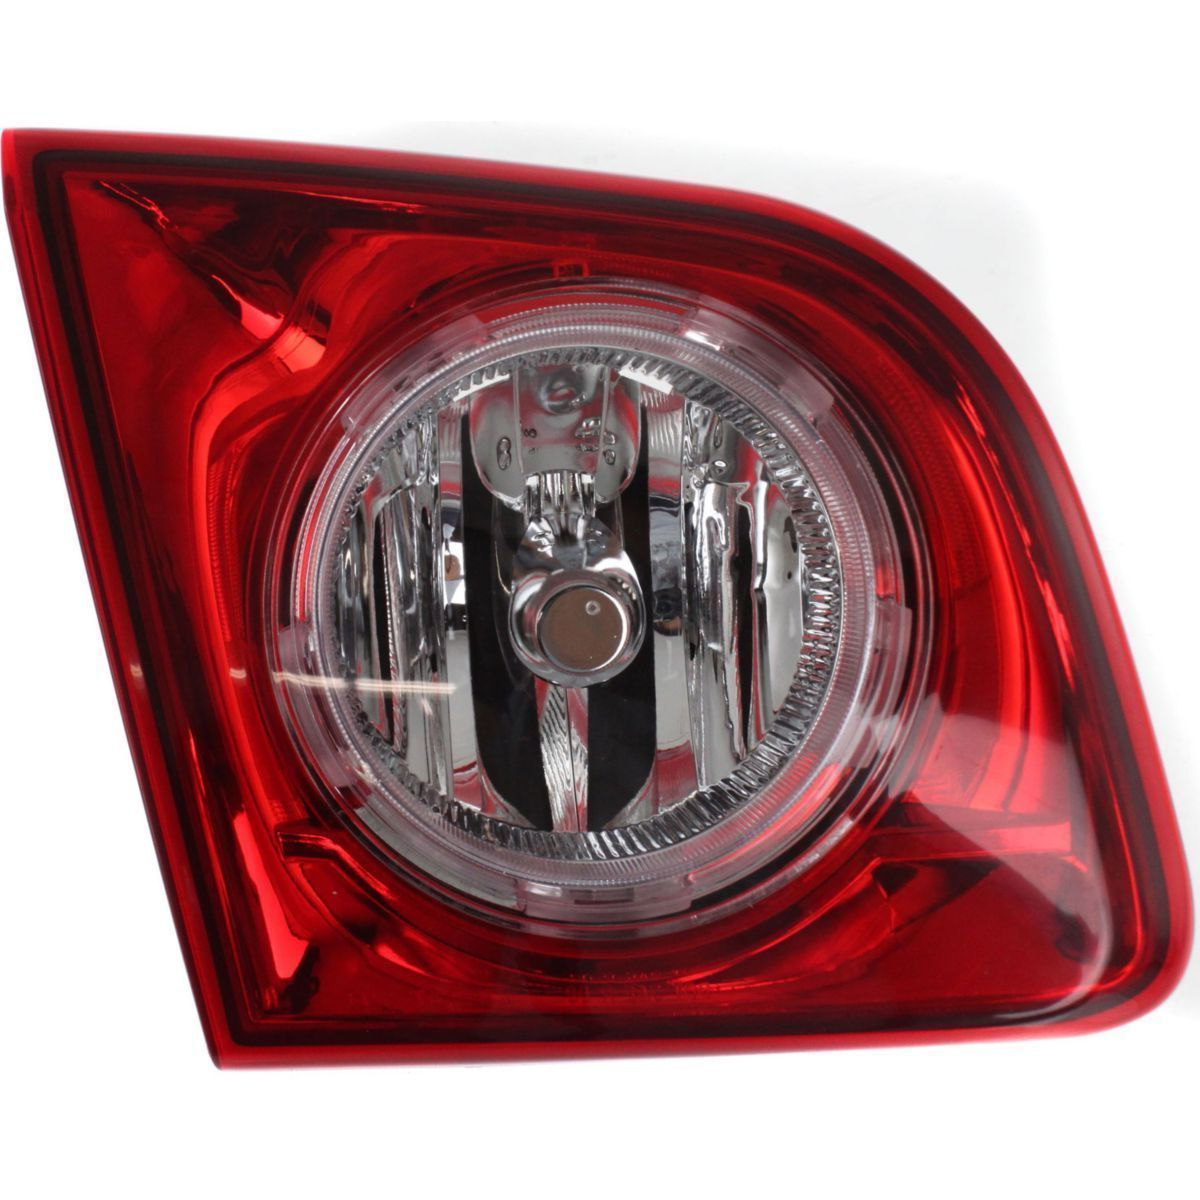 Chevrolet Malibu Sedan 2008 2009 2010 2011 2012 tail light inner left driver